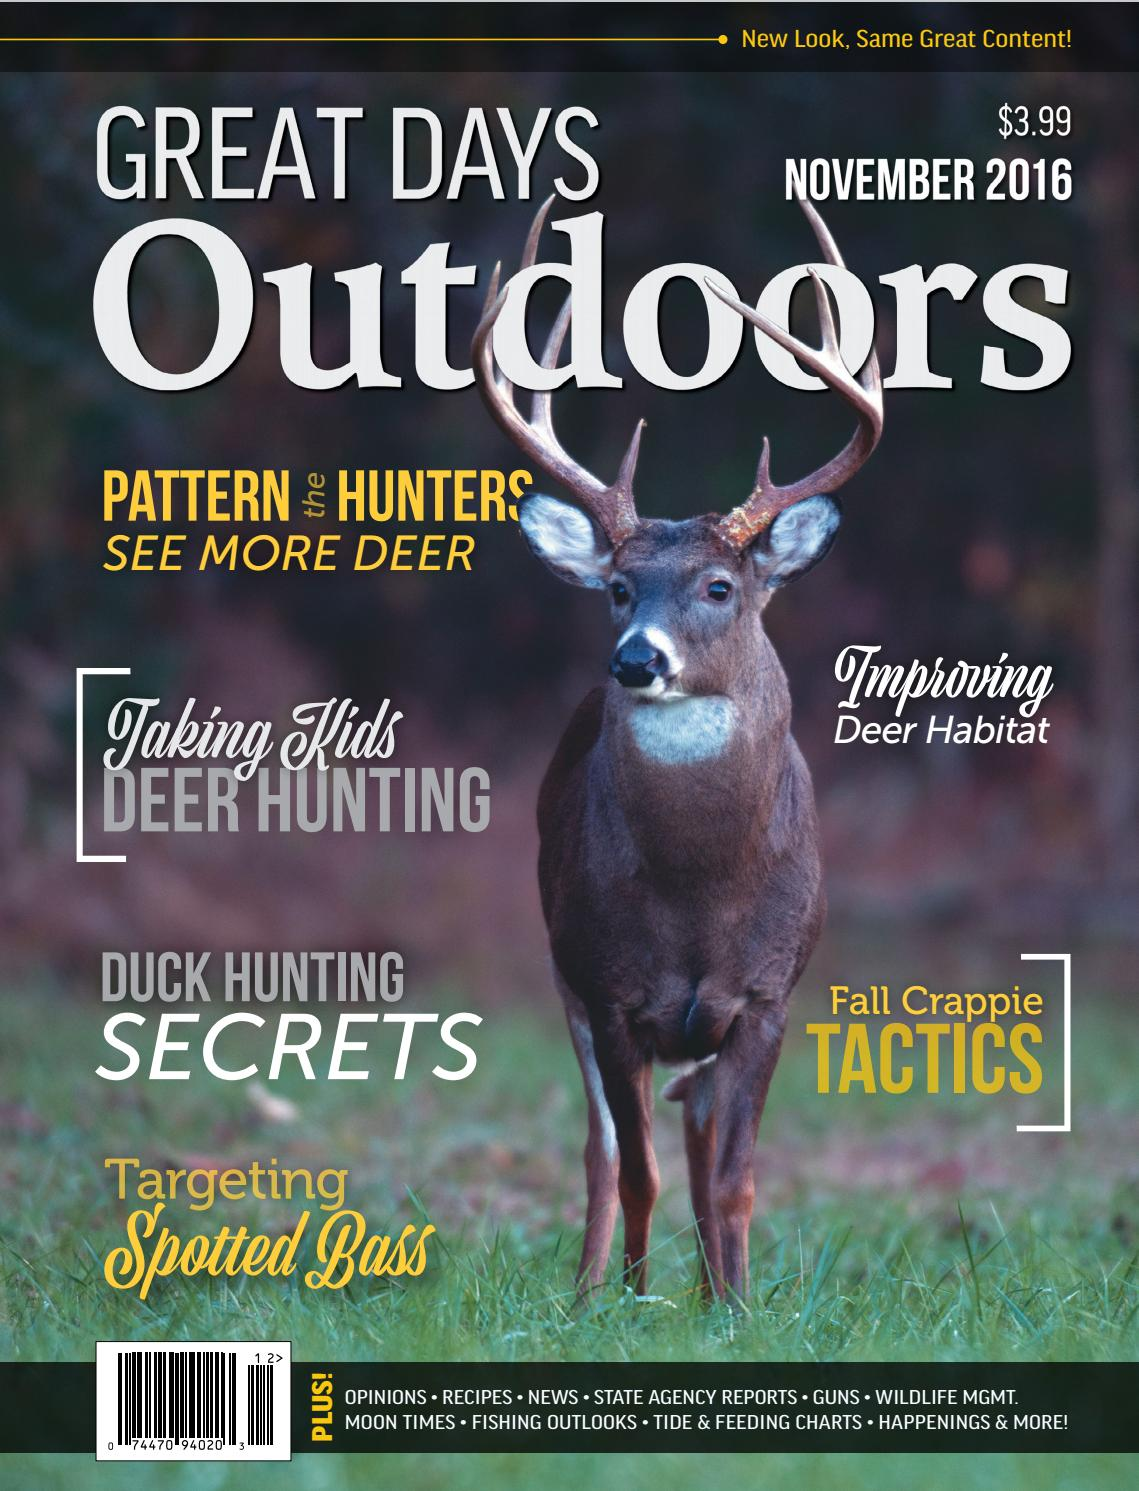 Great days outdoors november 2016 by trendsouth media issuu fandeluxe Choice Image